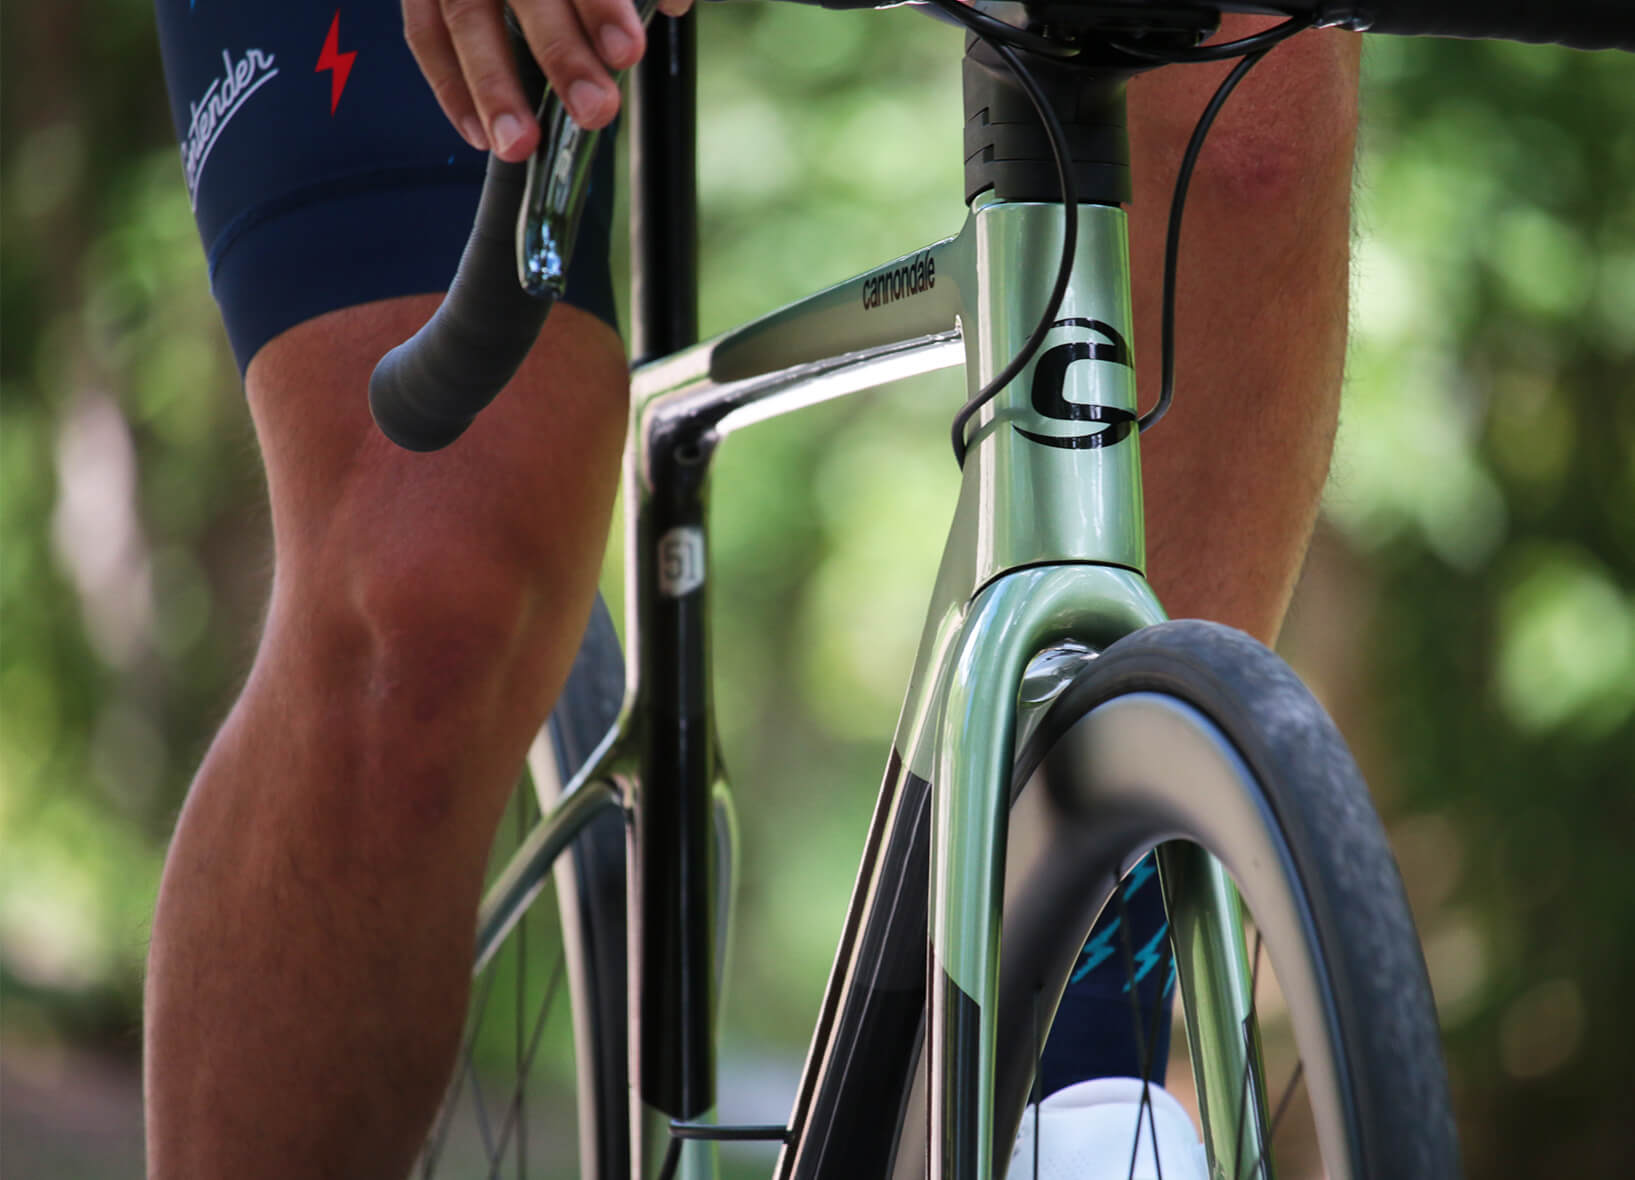 2020 Cannondale EVO - Contender Bicycles